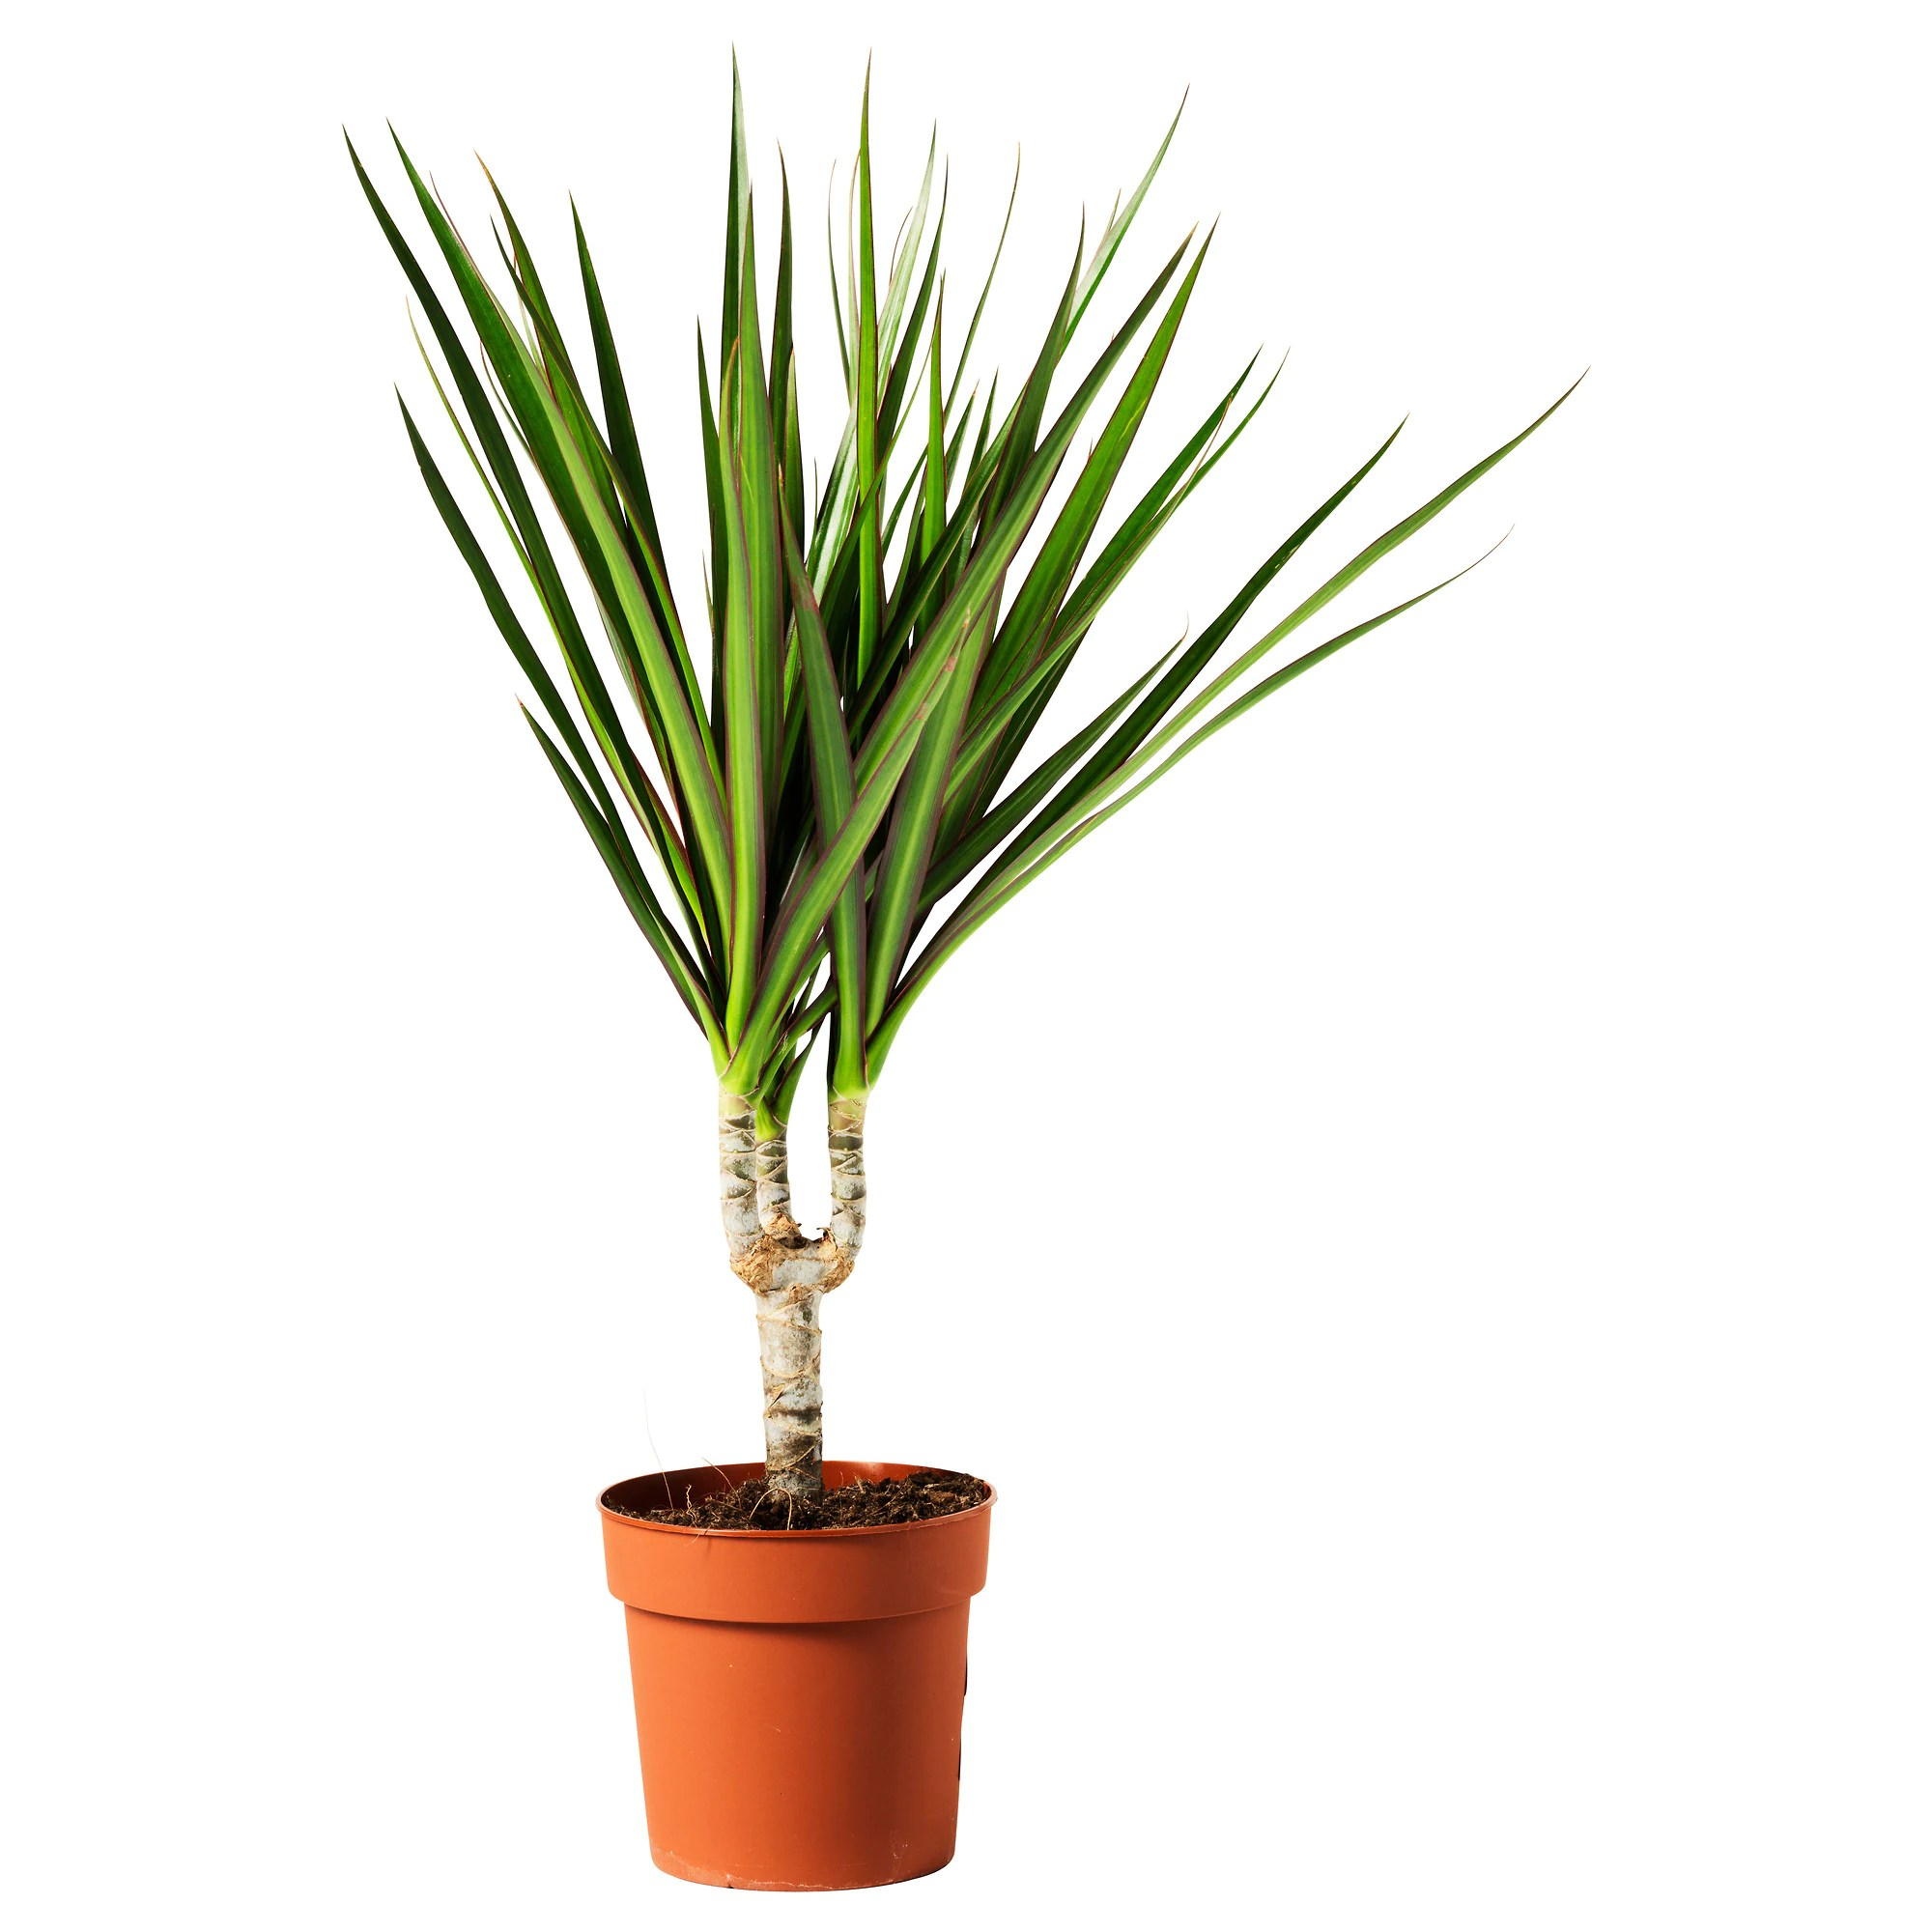 Ikea Palm Tree Dracaena Marginata Potted Plant Dragon Tree 1 Stem